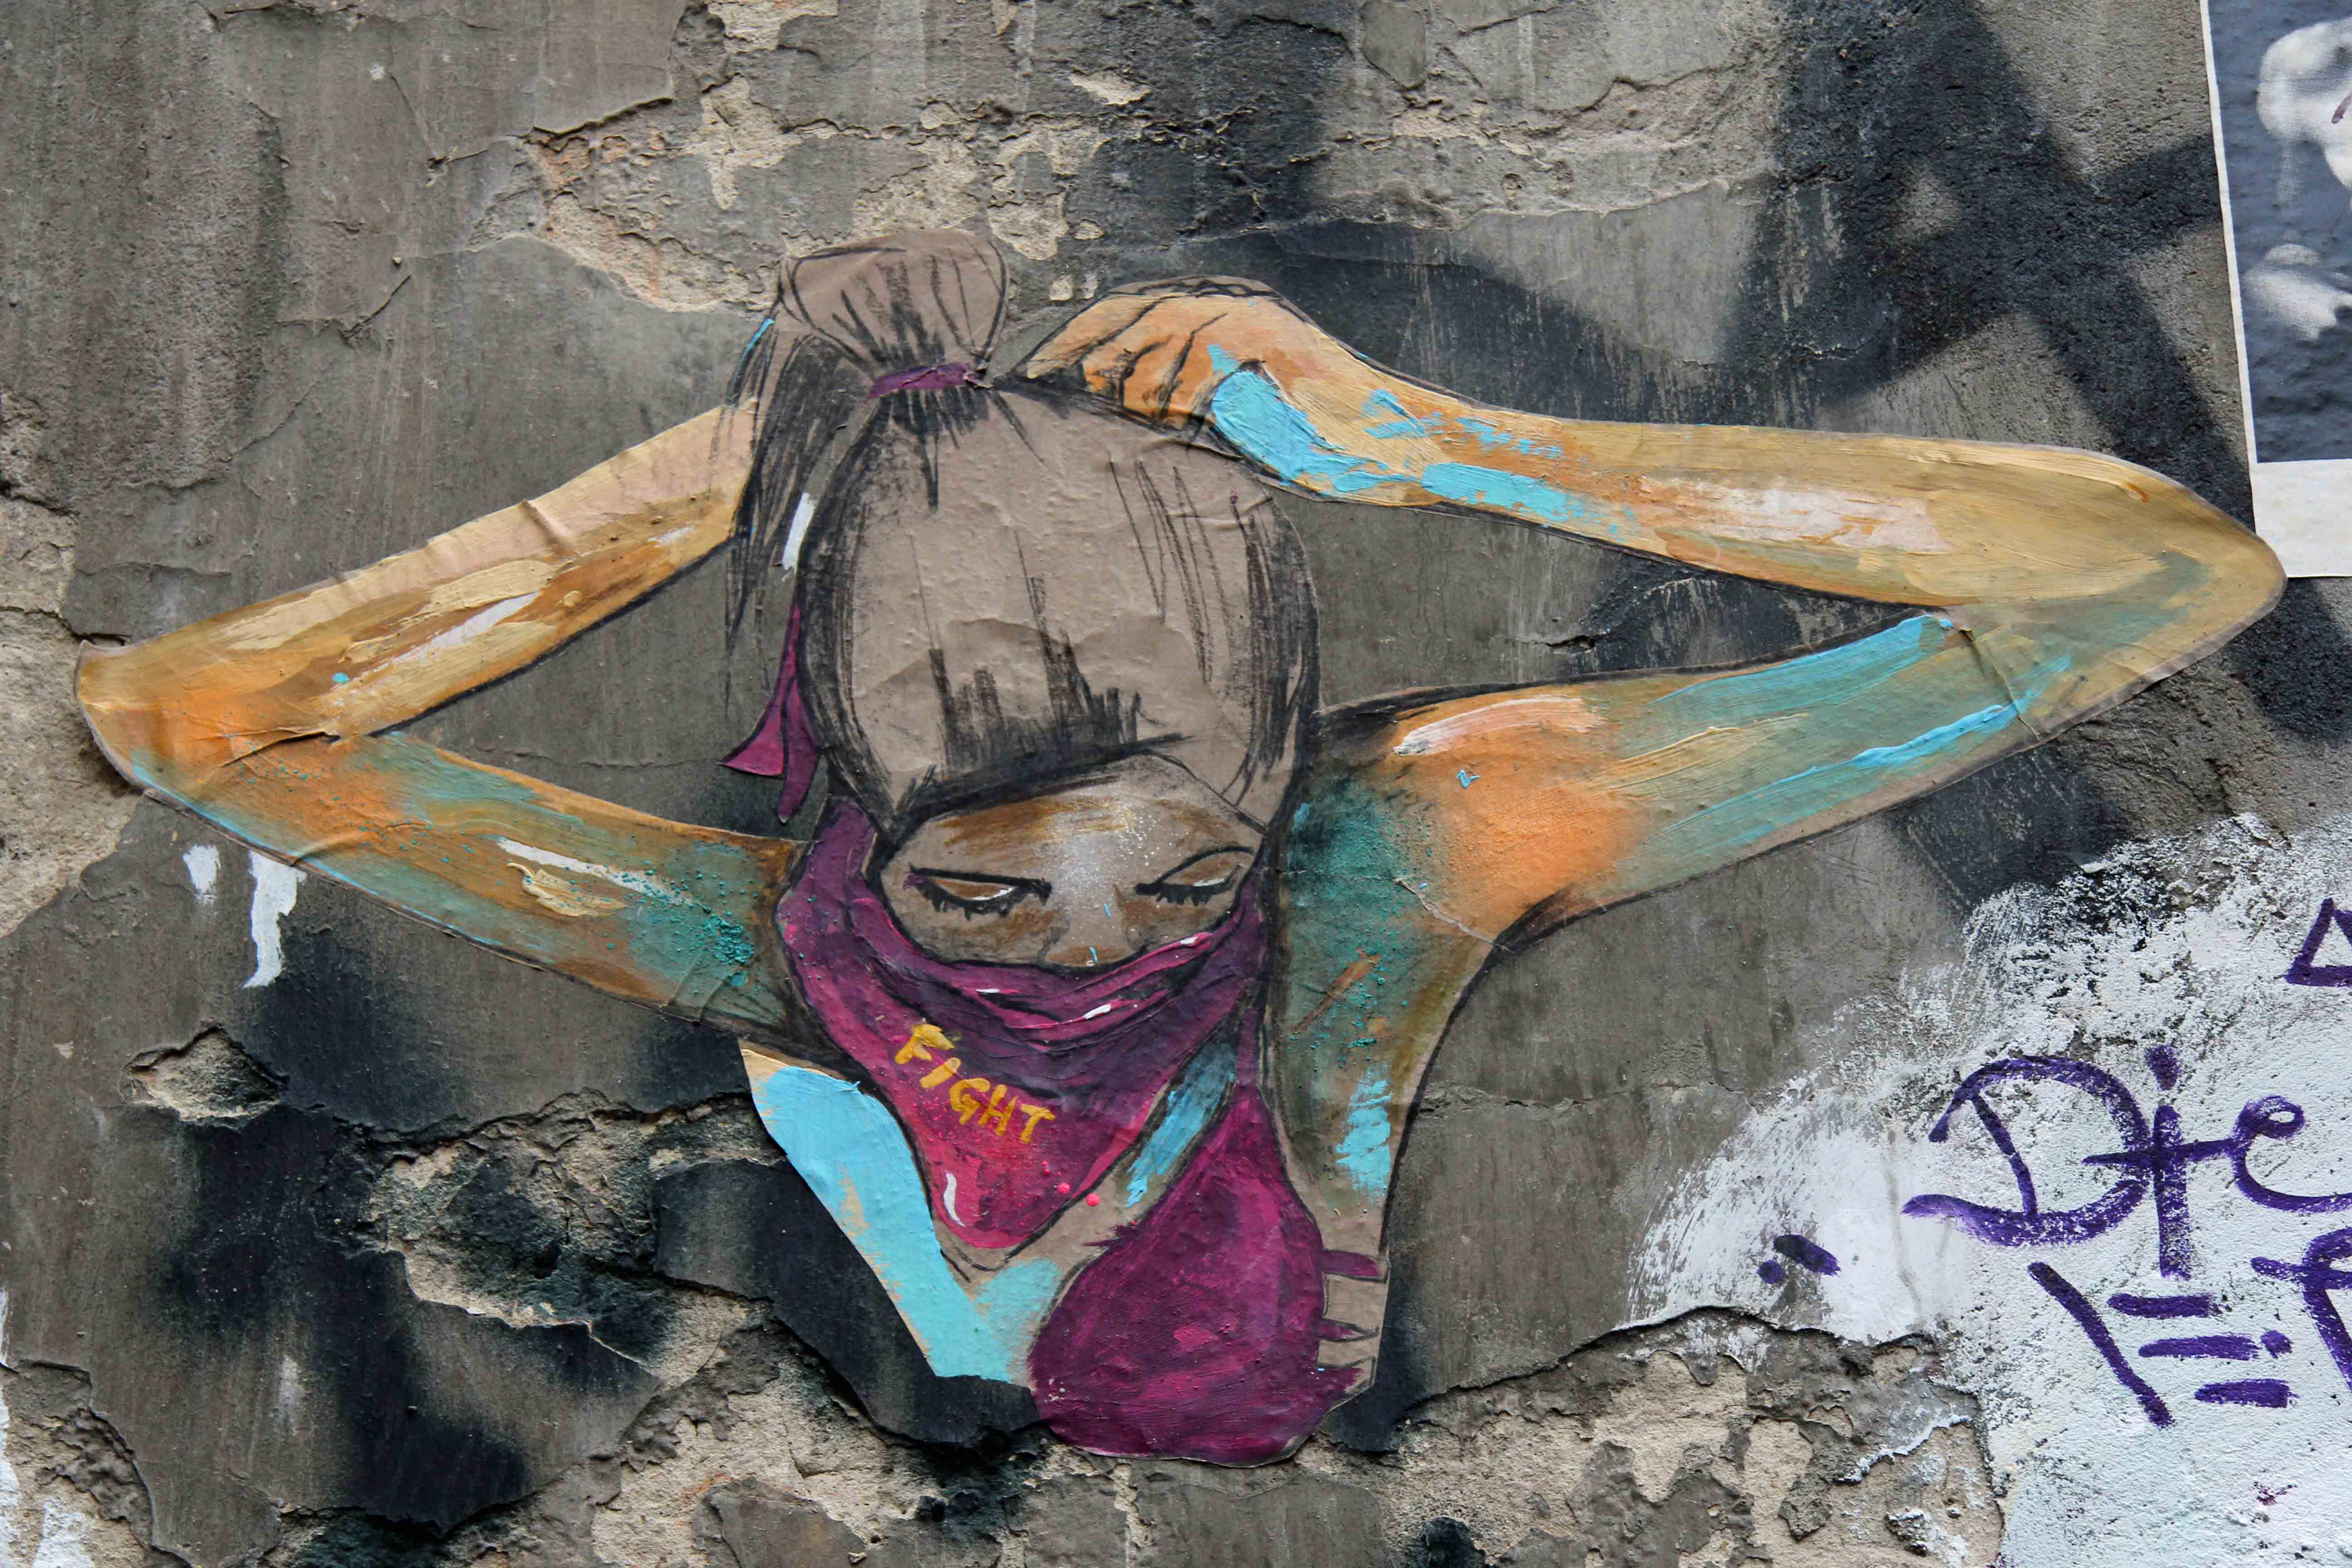 Fight - Street Art by Unknown Artist in Berlin